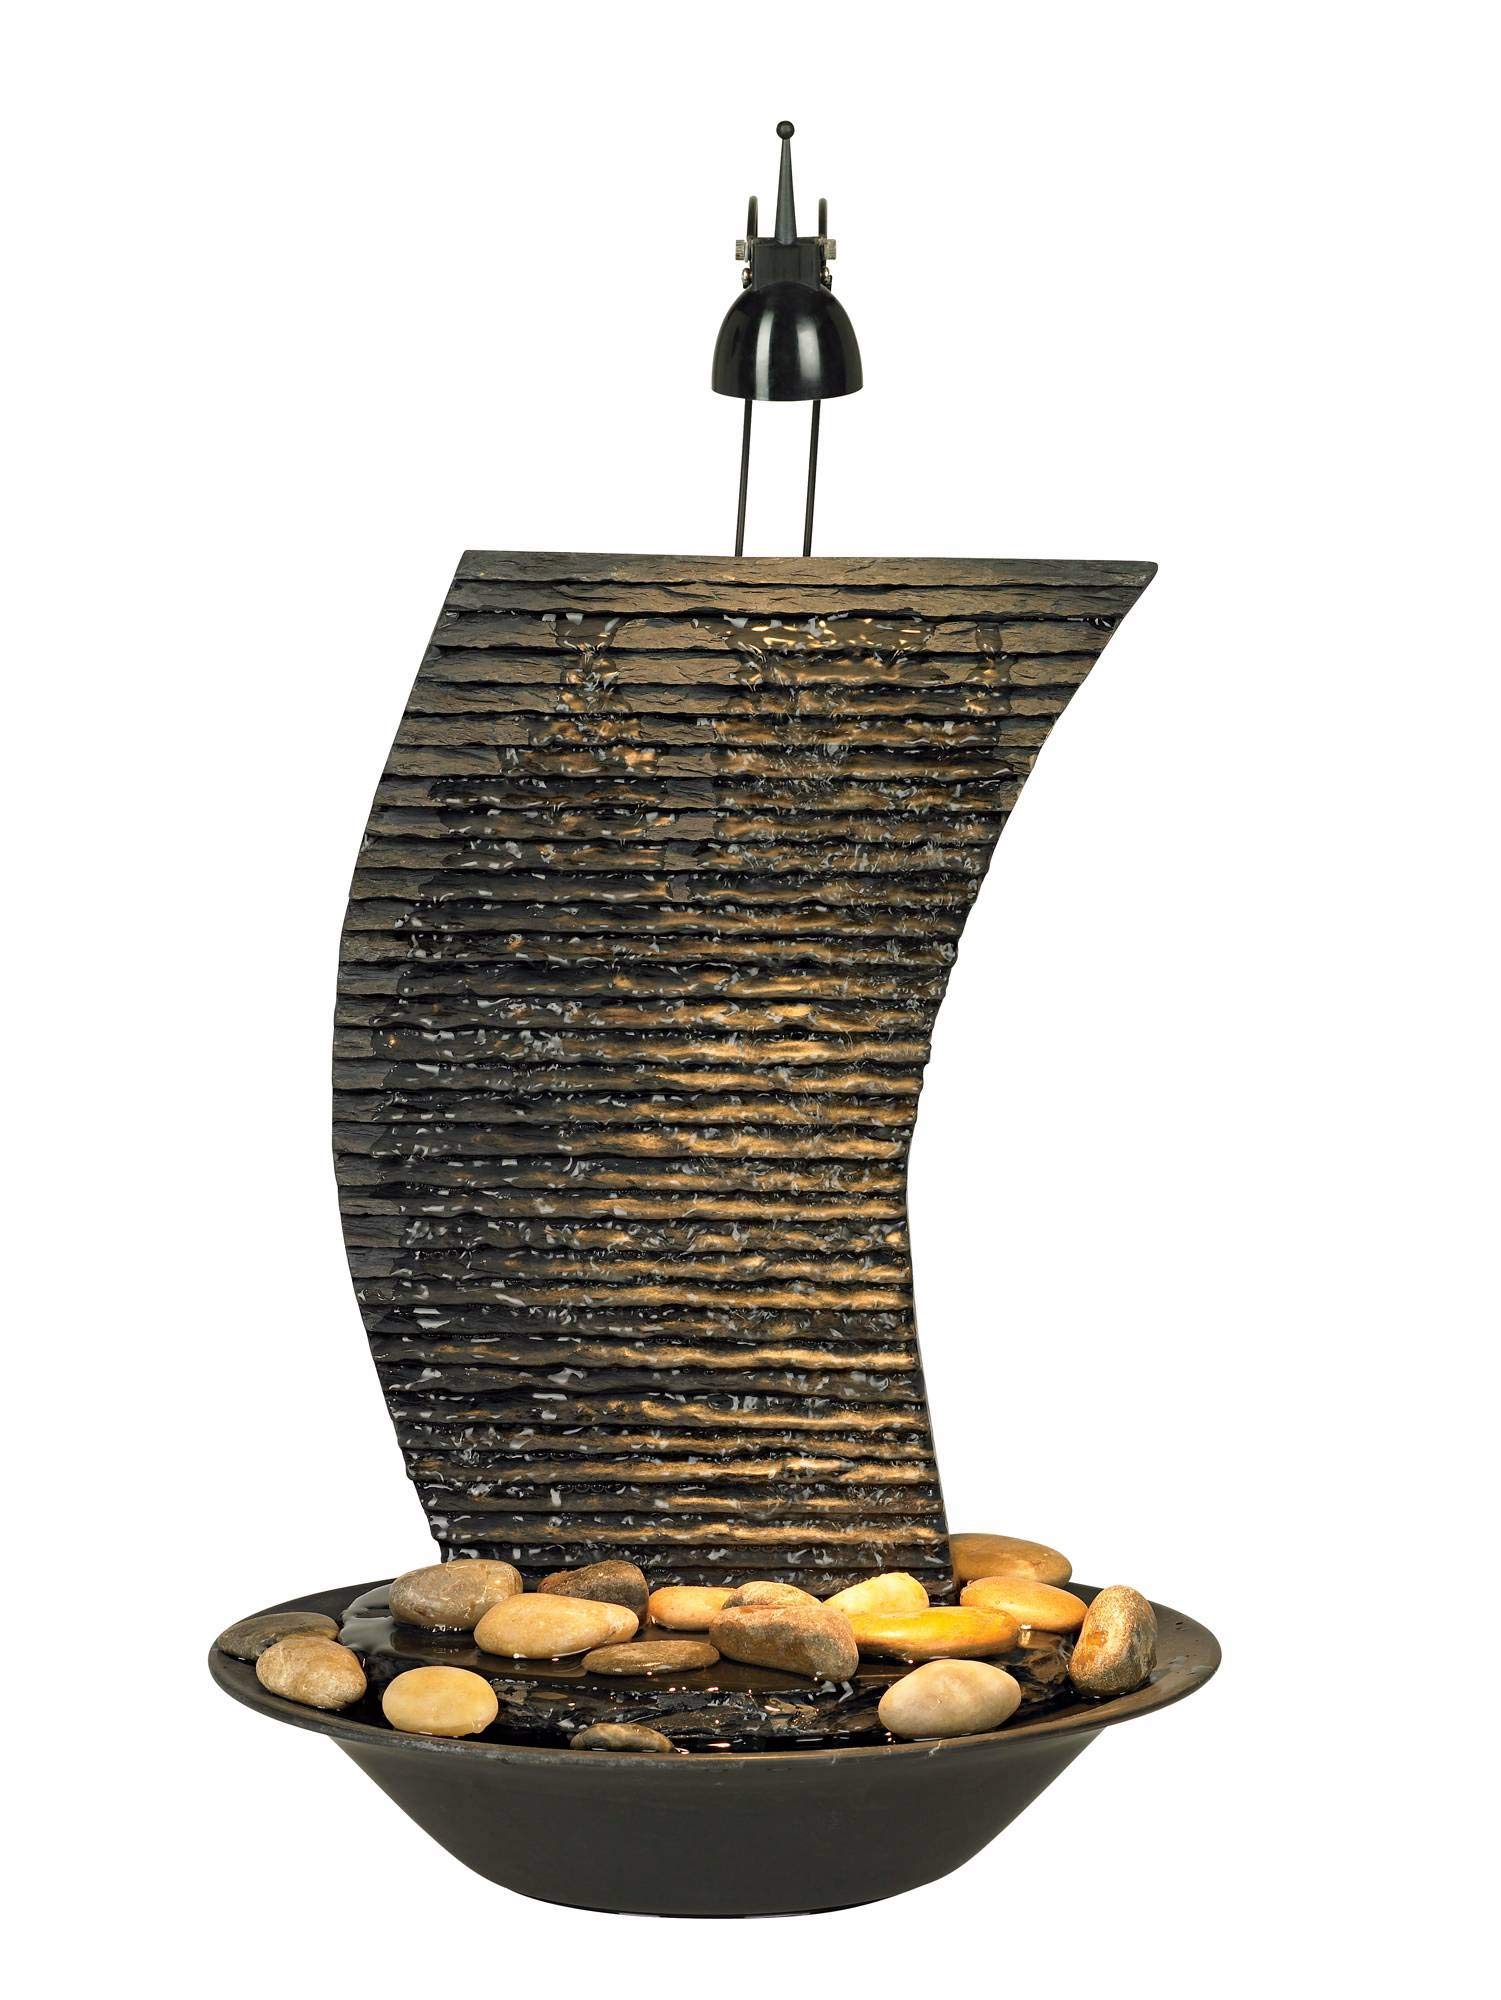 John Timberland Water Ripple 17 1/4'' High Lighted Table Fountain by John Timberland